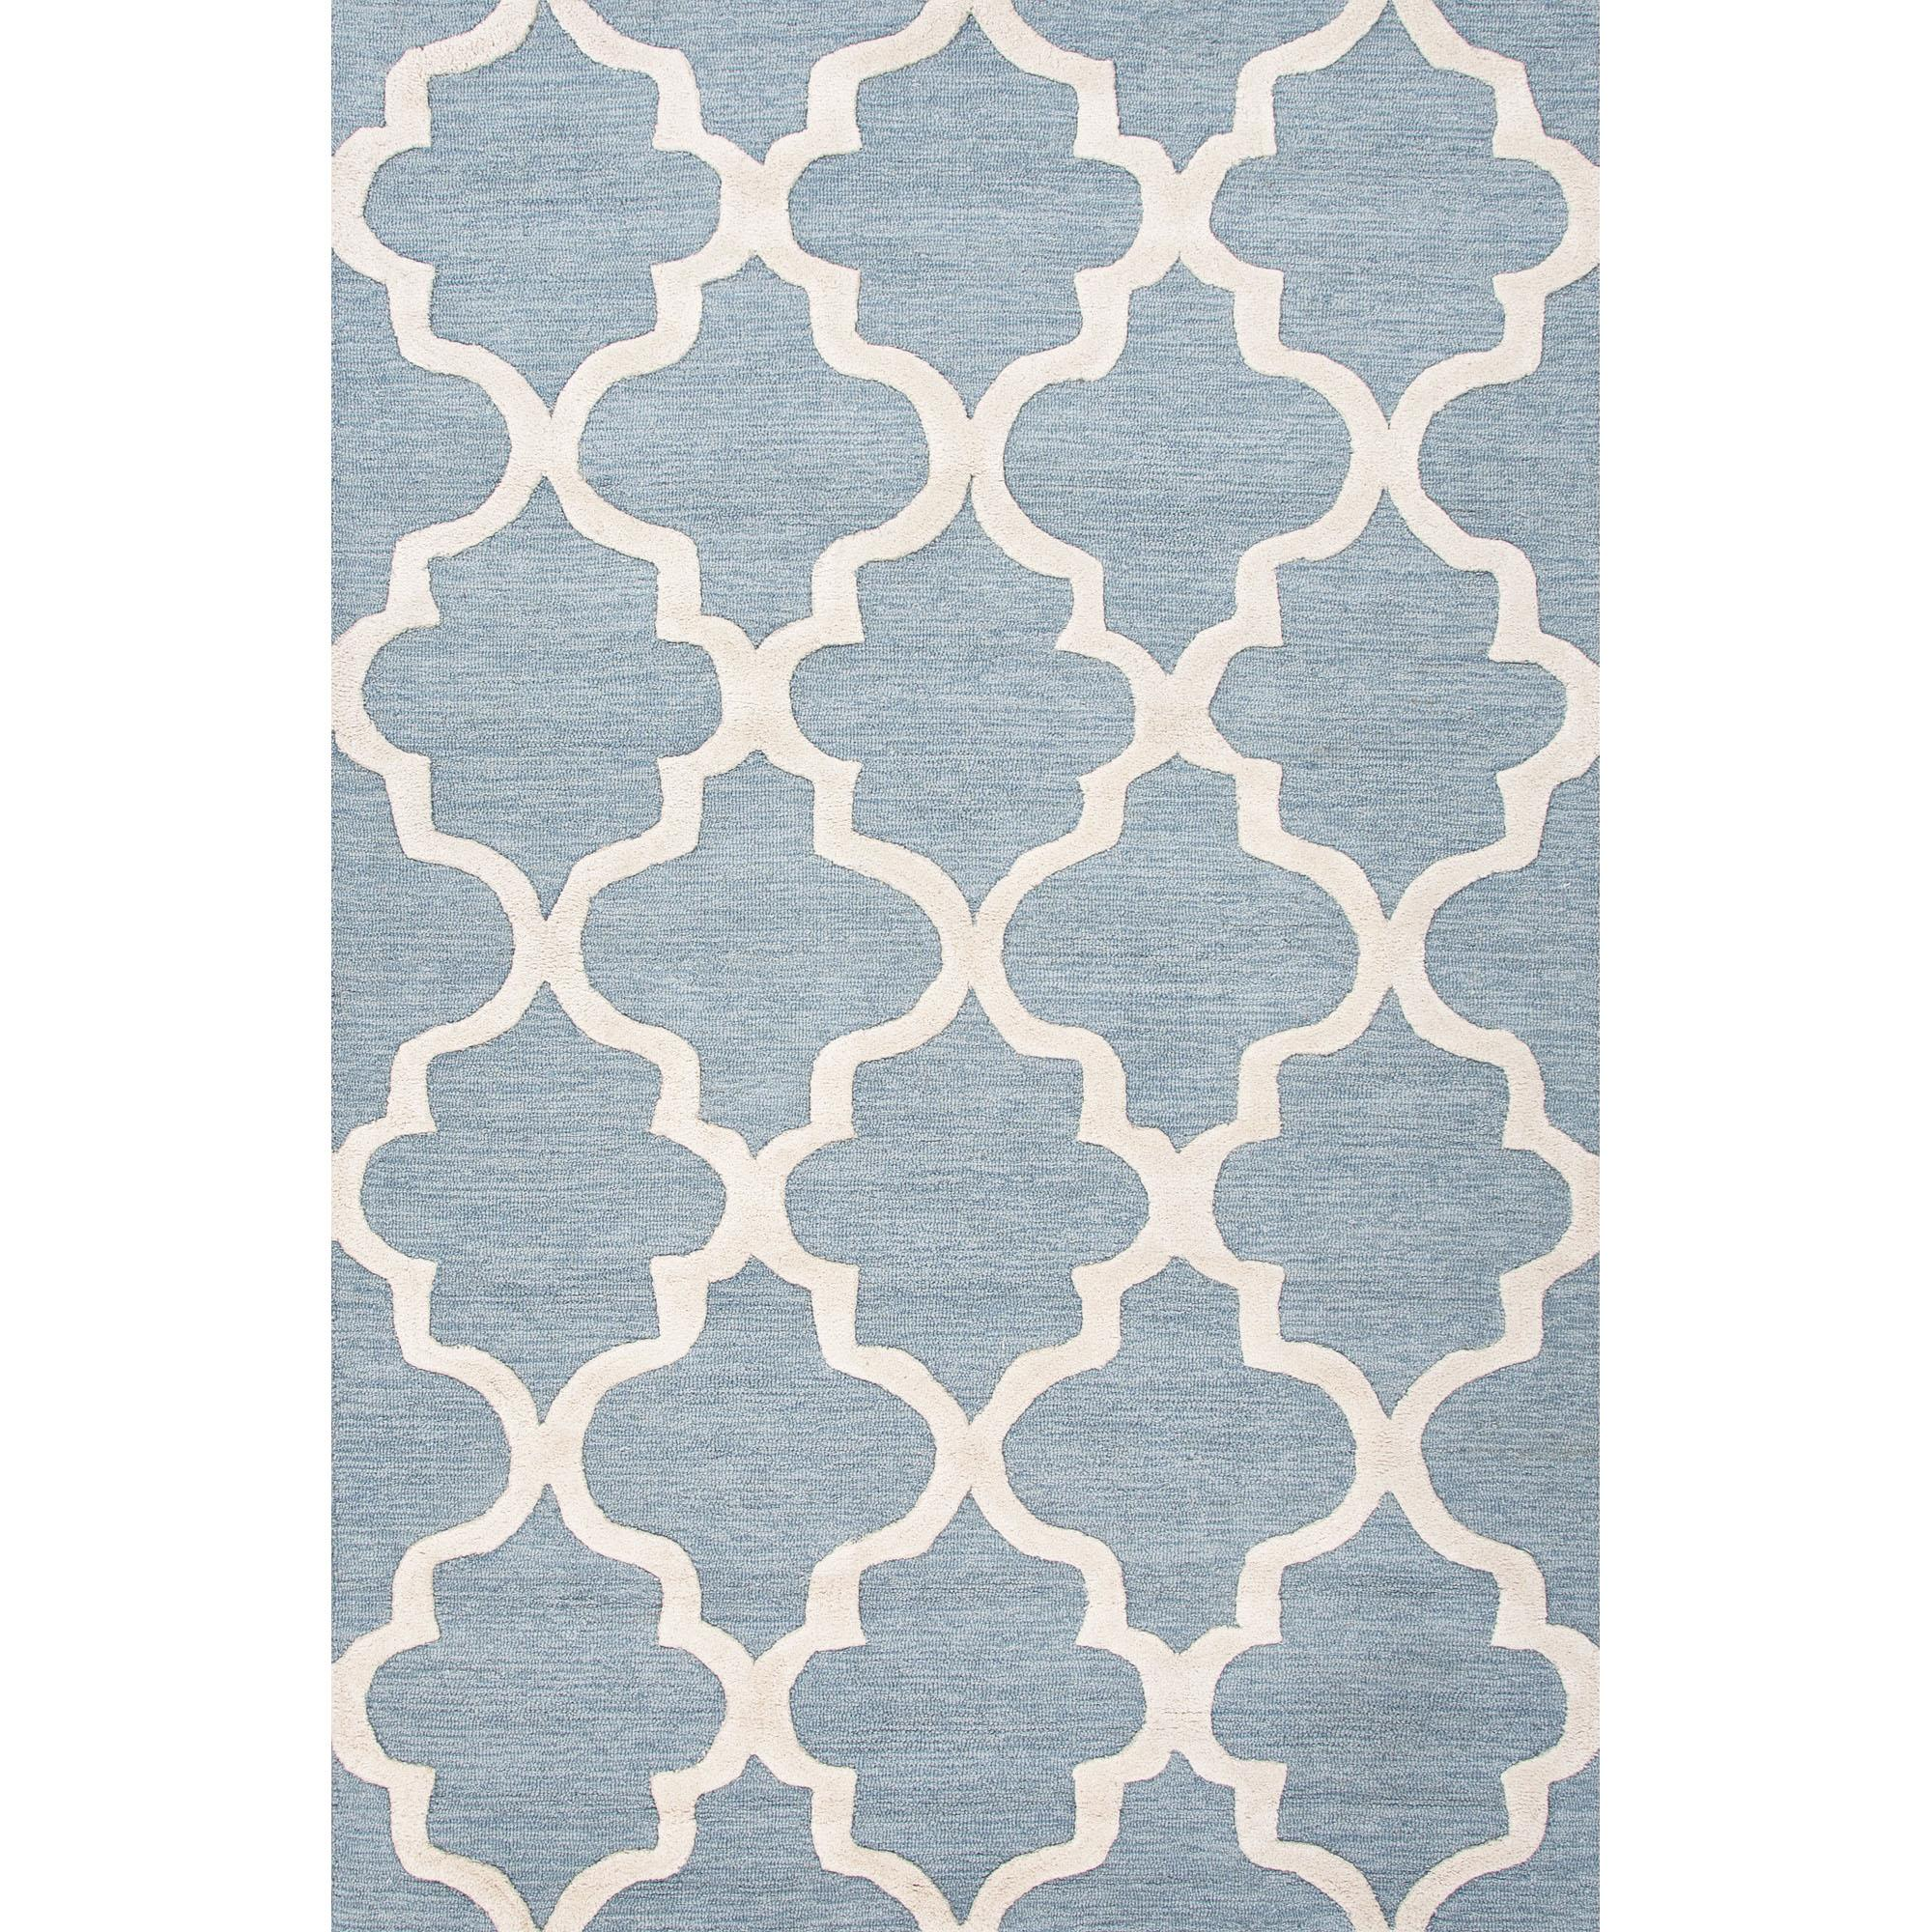 JAIPUR Rugs City 3.6 x 5.6 Rug - Item Number: RUG111748